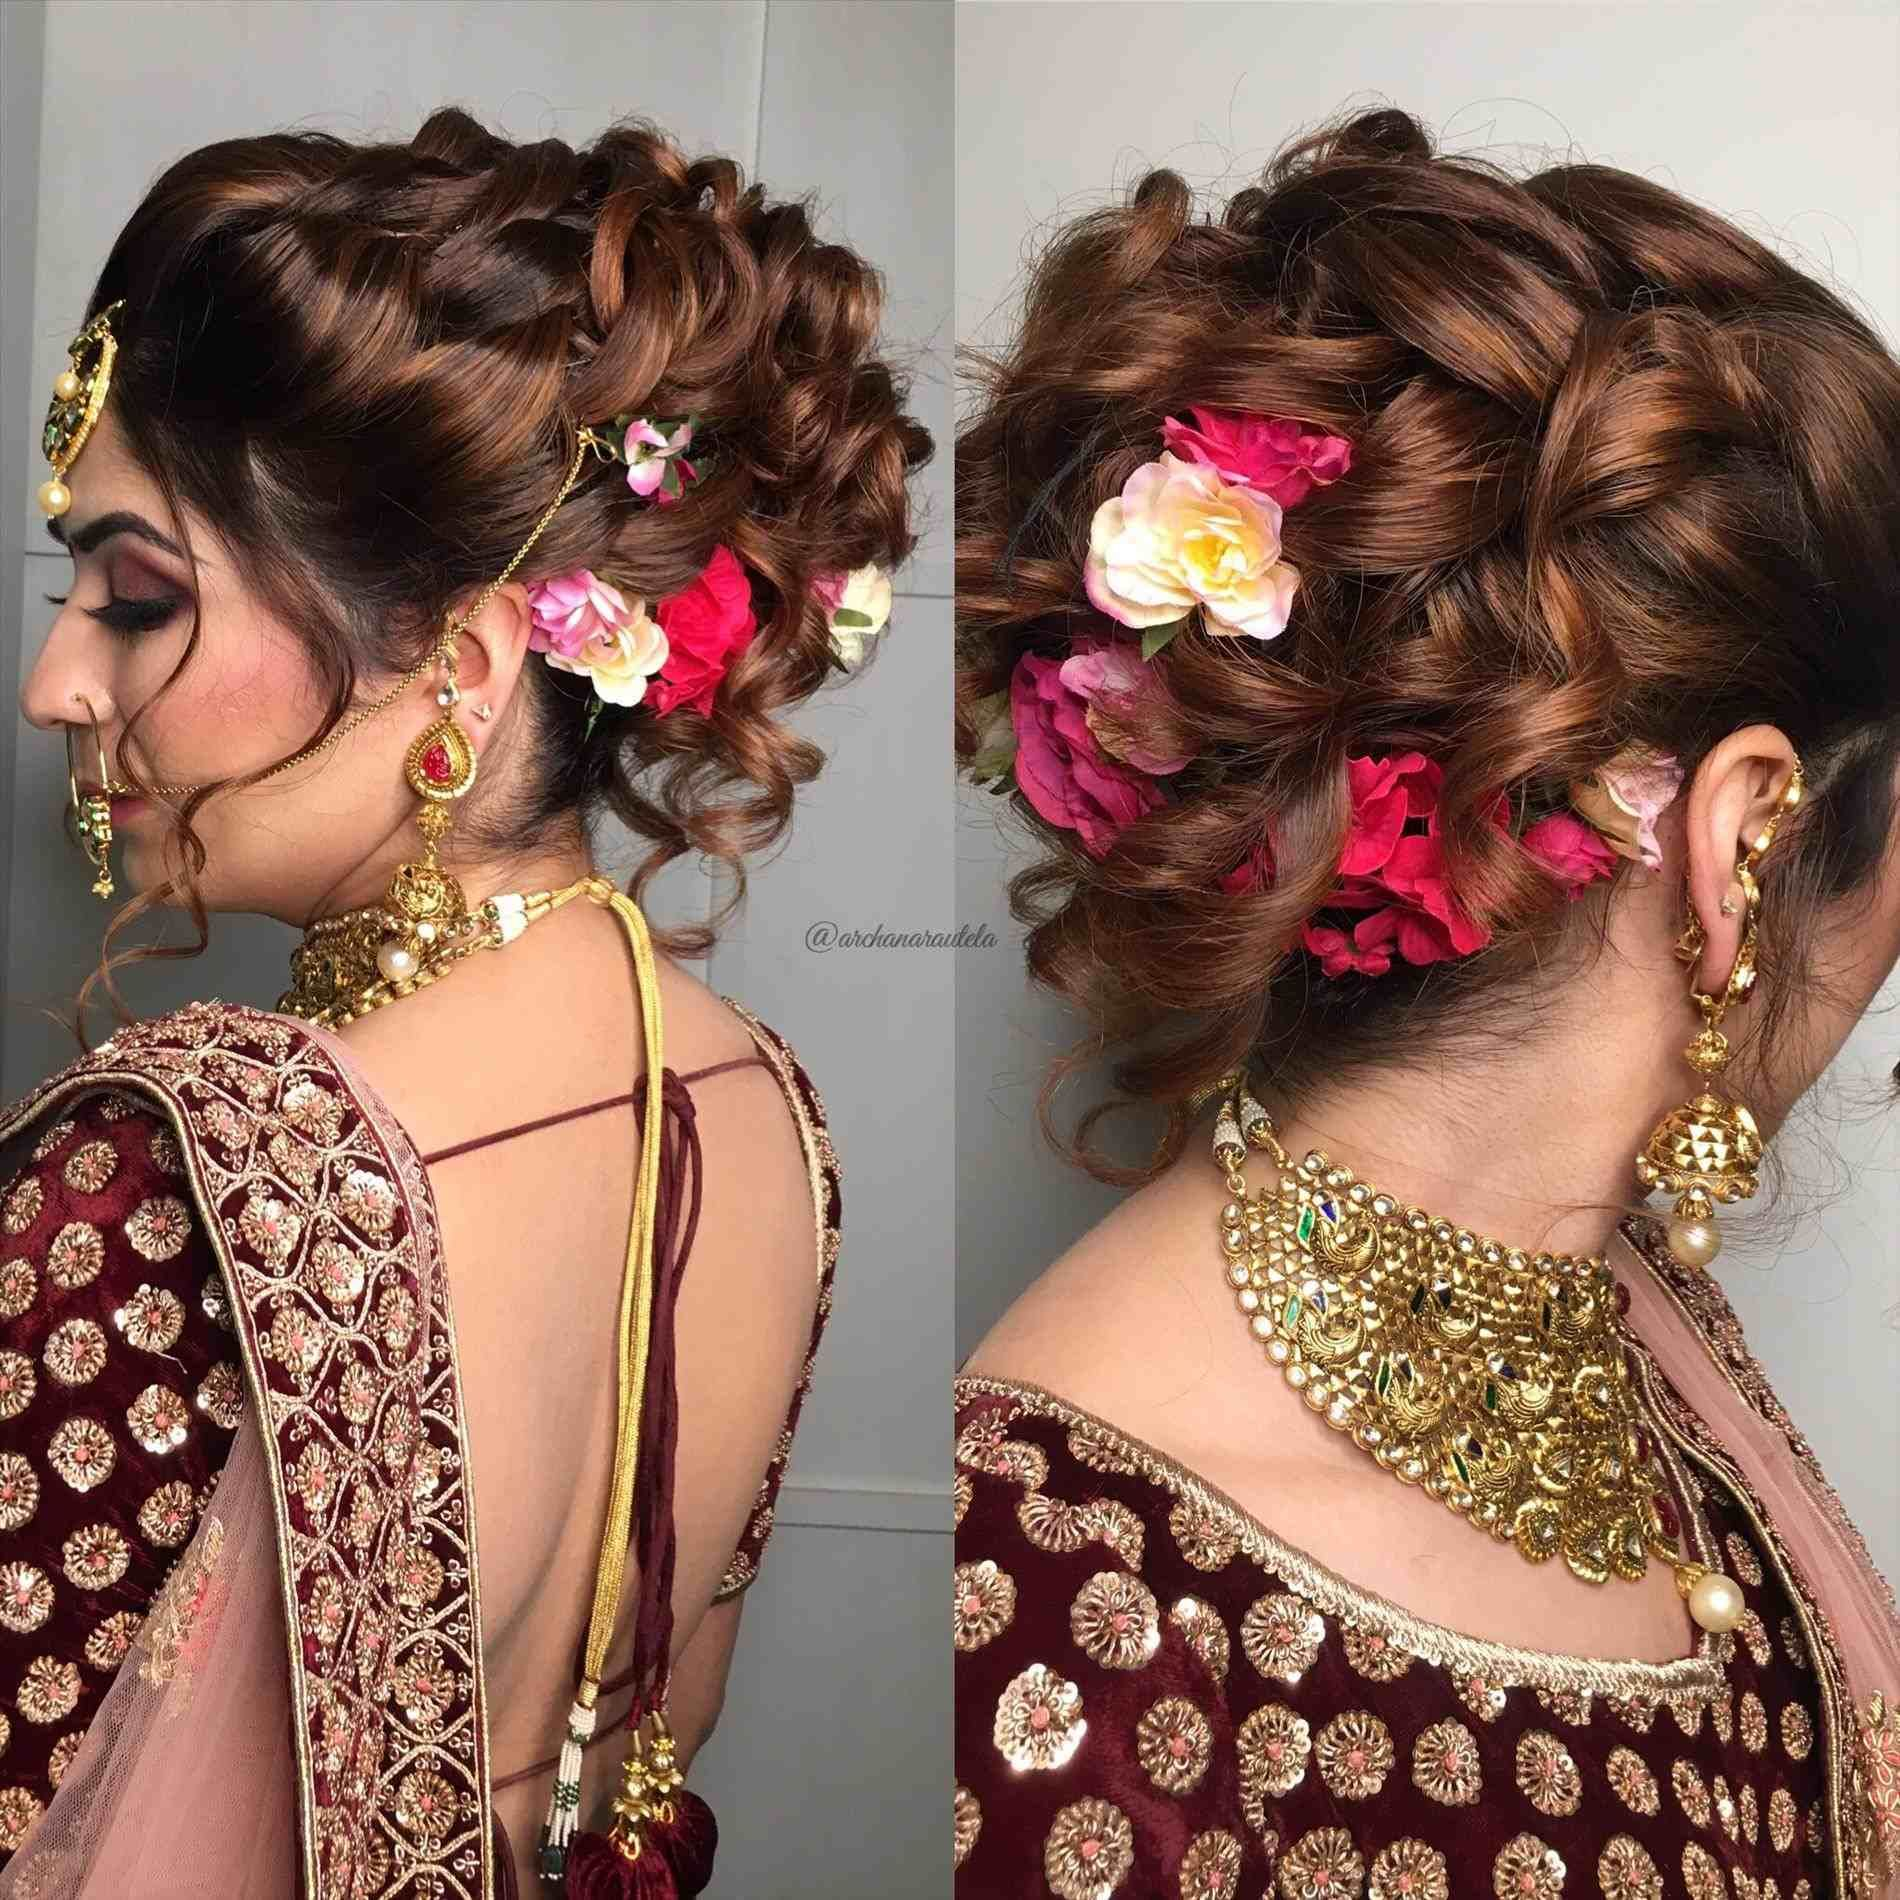 Half Up Half Down Wedding Hair For Bride Or Mother Of The Bride Flower Girl Hair Style W Indian Wedding Hairstyles Indian Bridal Hairstyles Indian Hairstyles